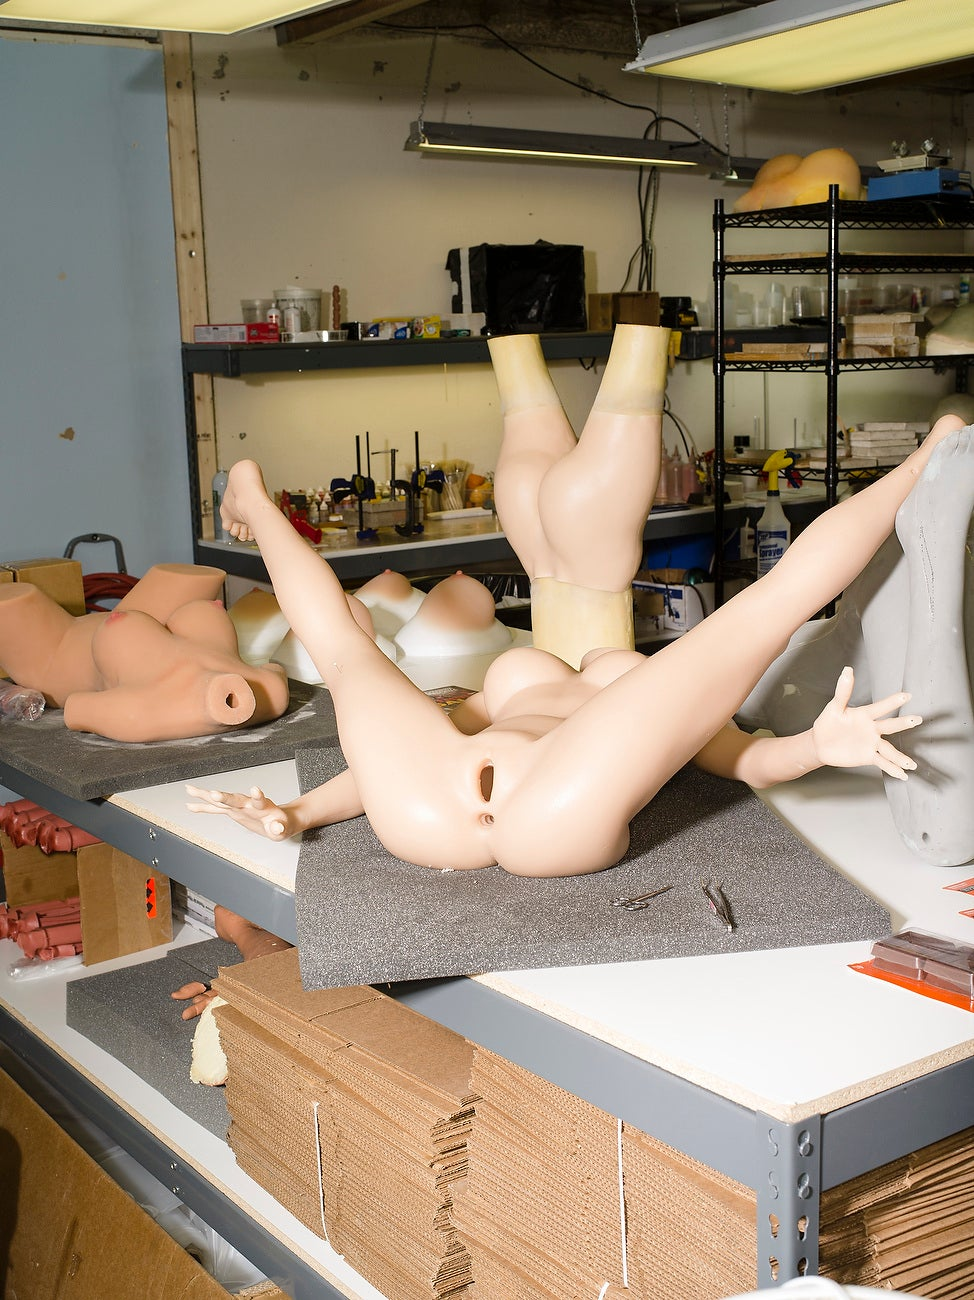 Go Deep Inside a Sex Doll Factory